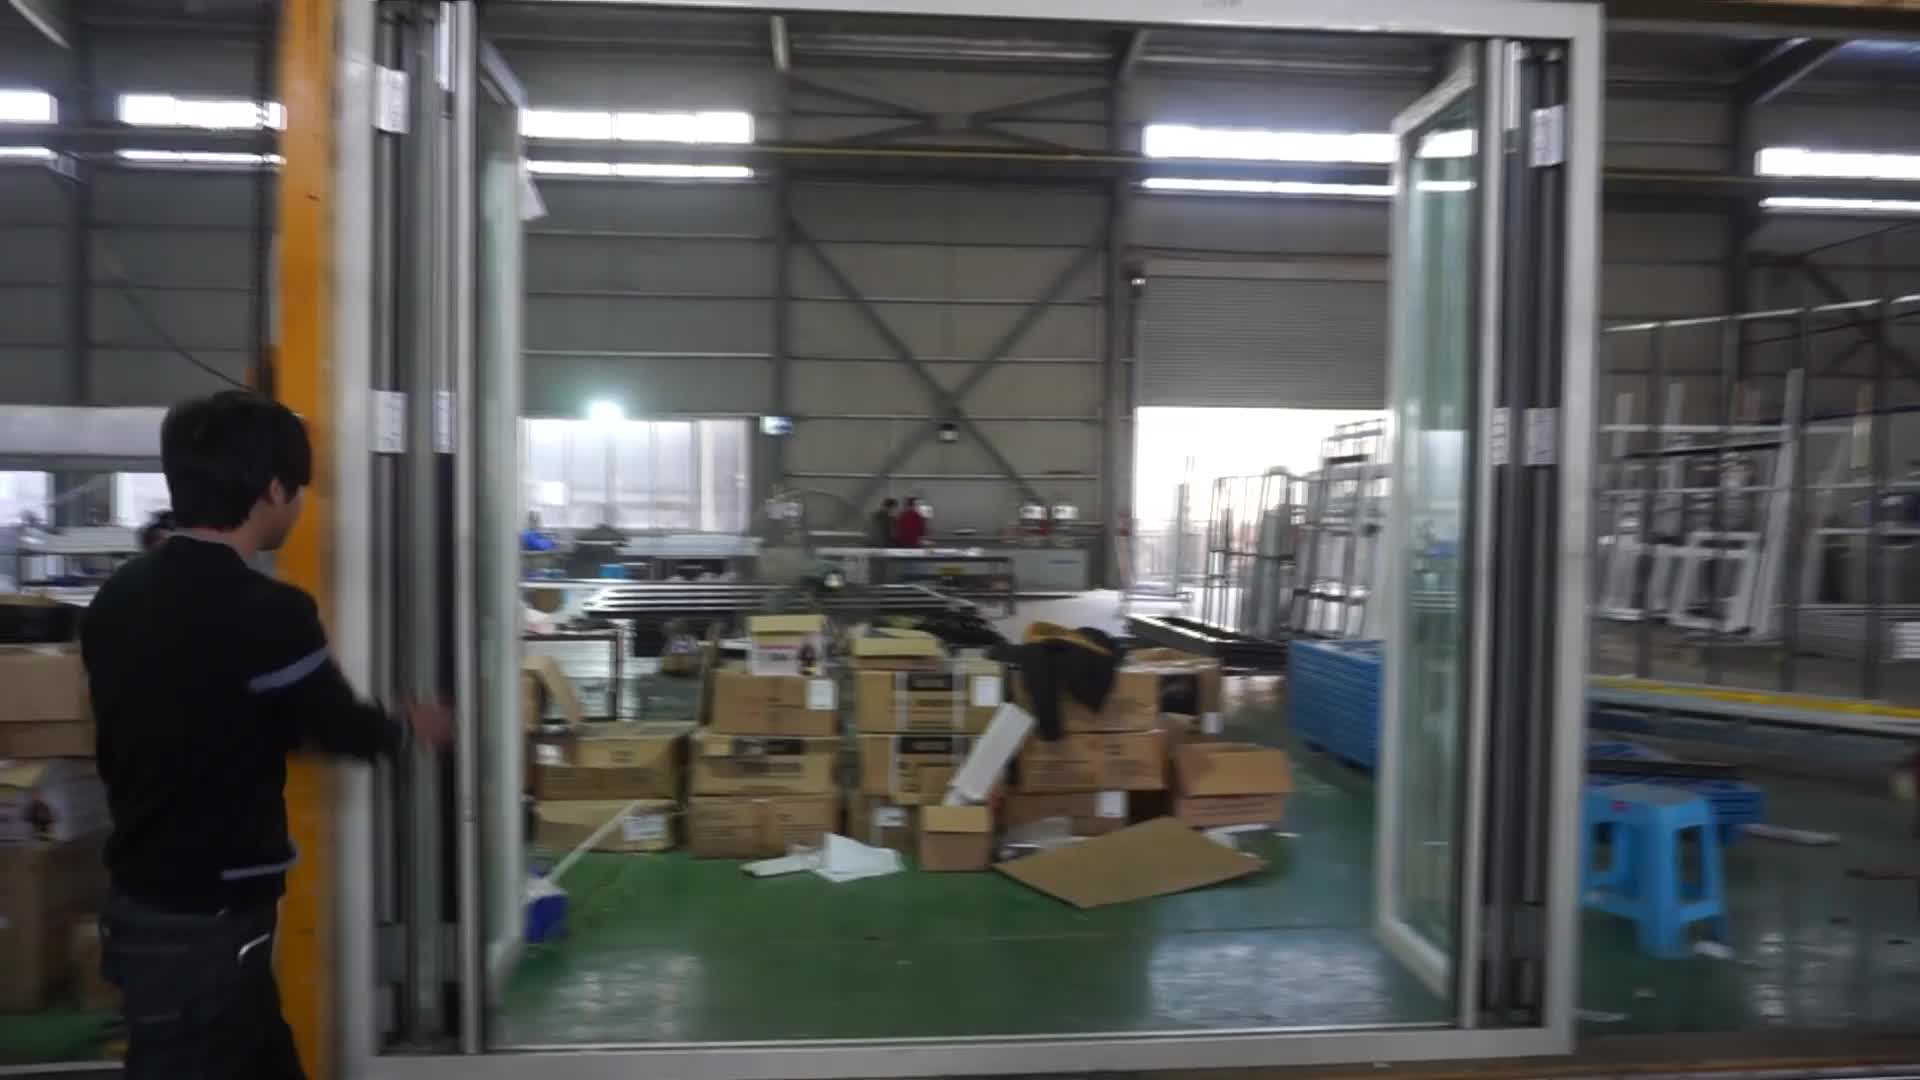 Commerical Water-proof Aluminum Folding Glass Bi-fold Factory Exterior Indian Door Design